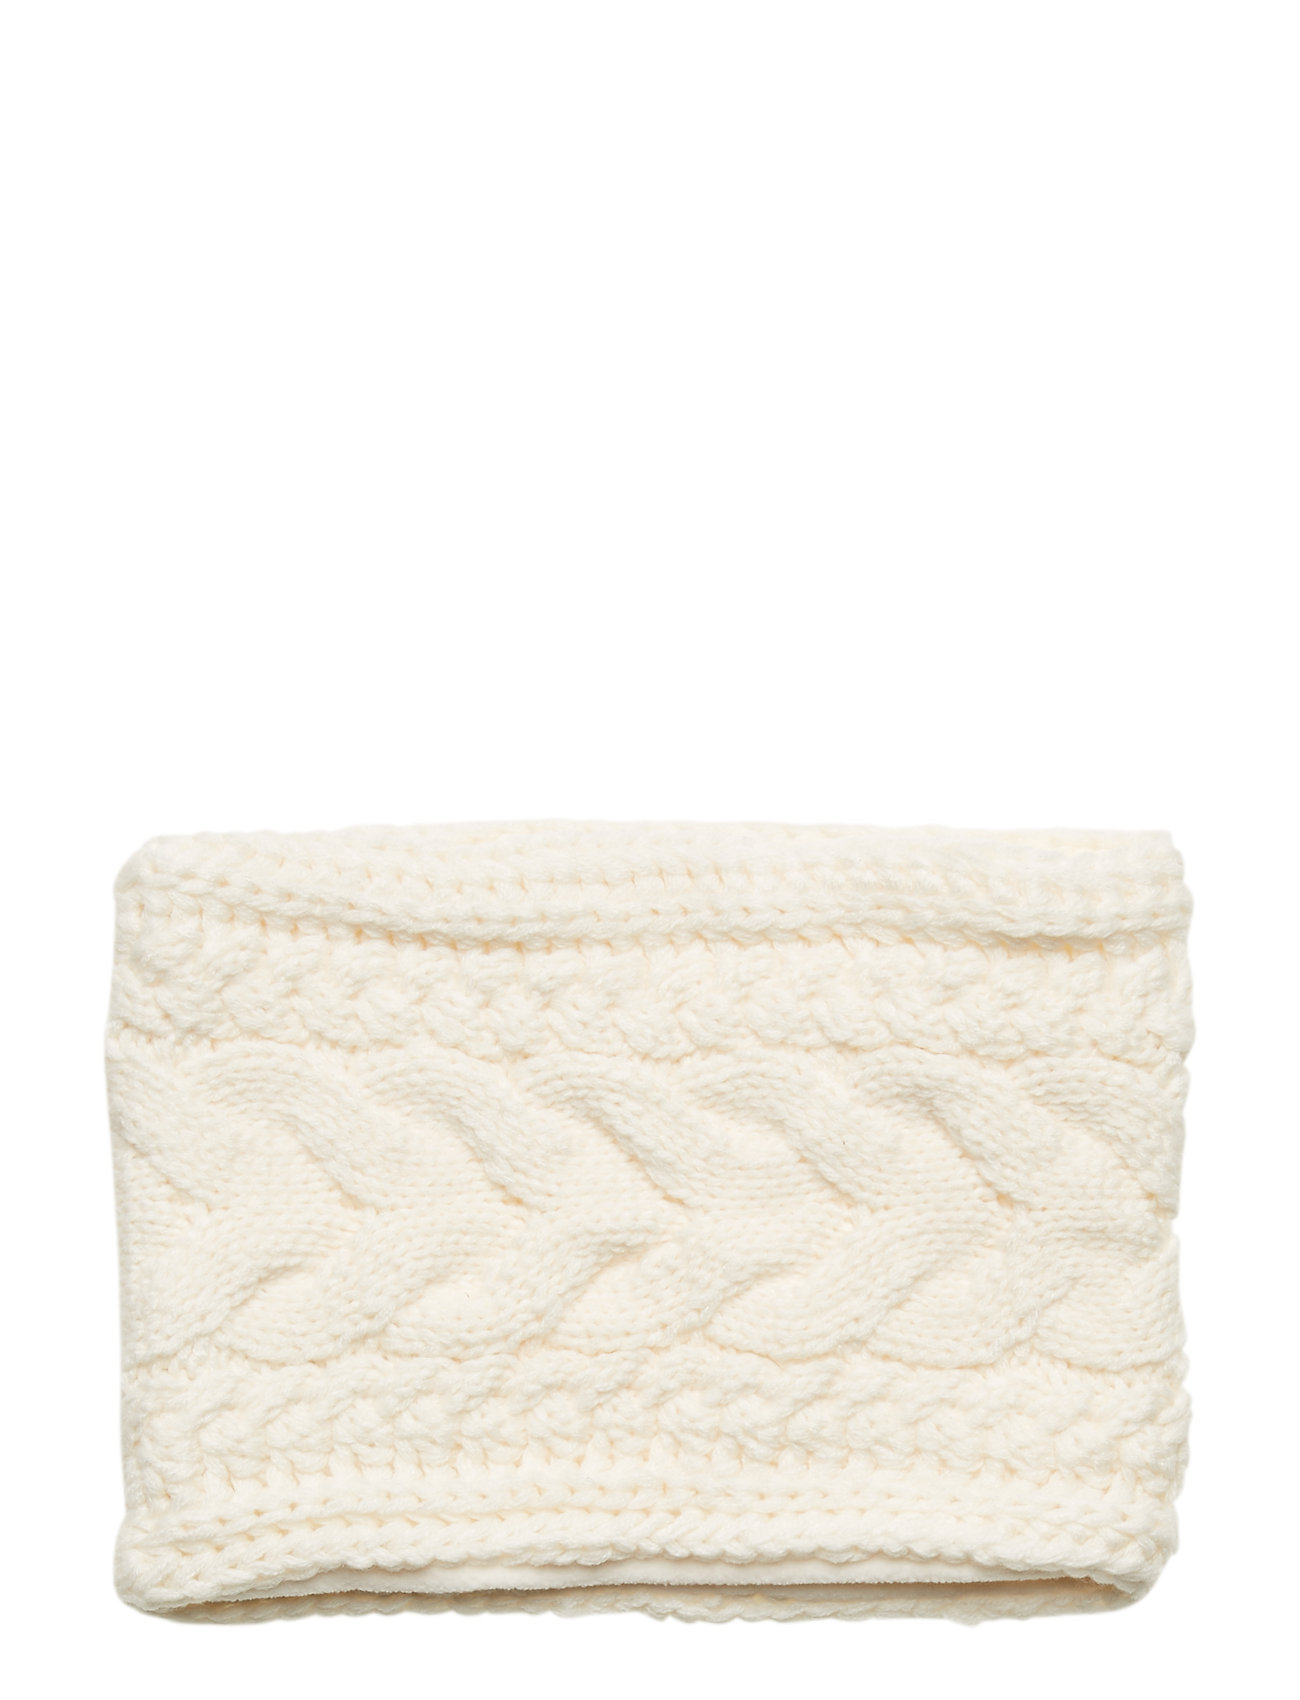 GAP G CABLE NKWRM - IVORY FROST